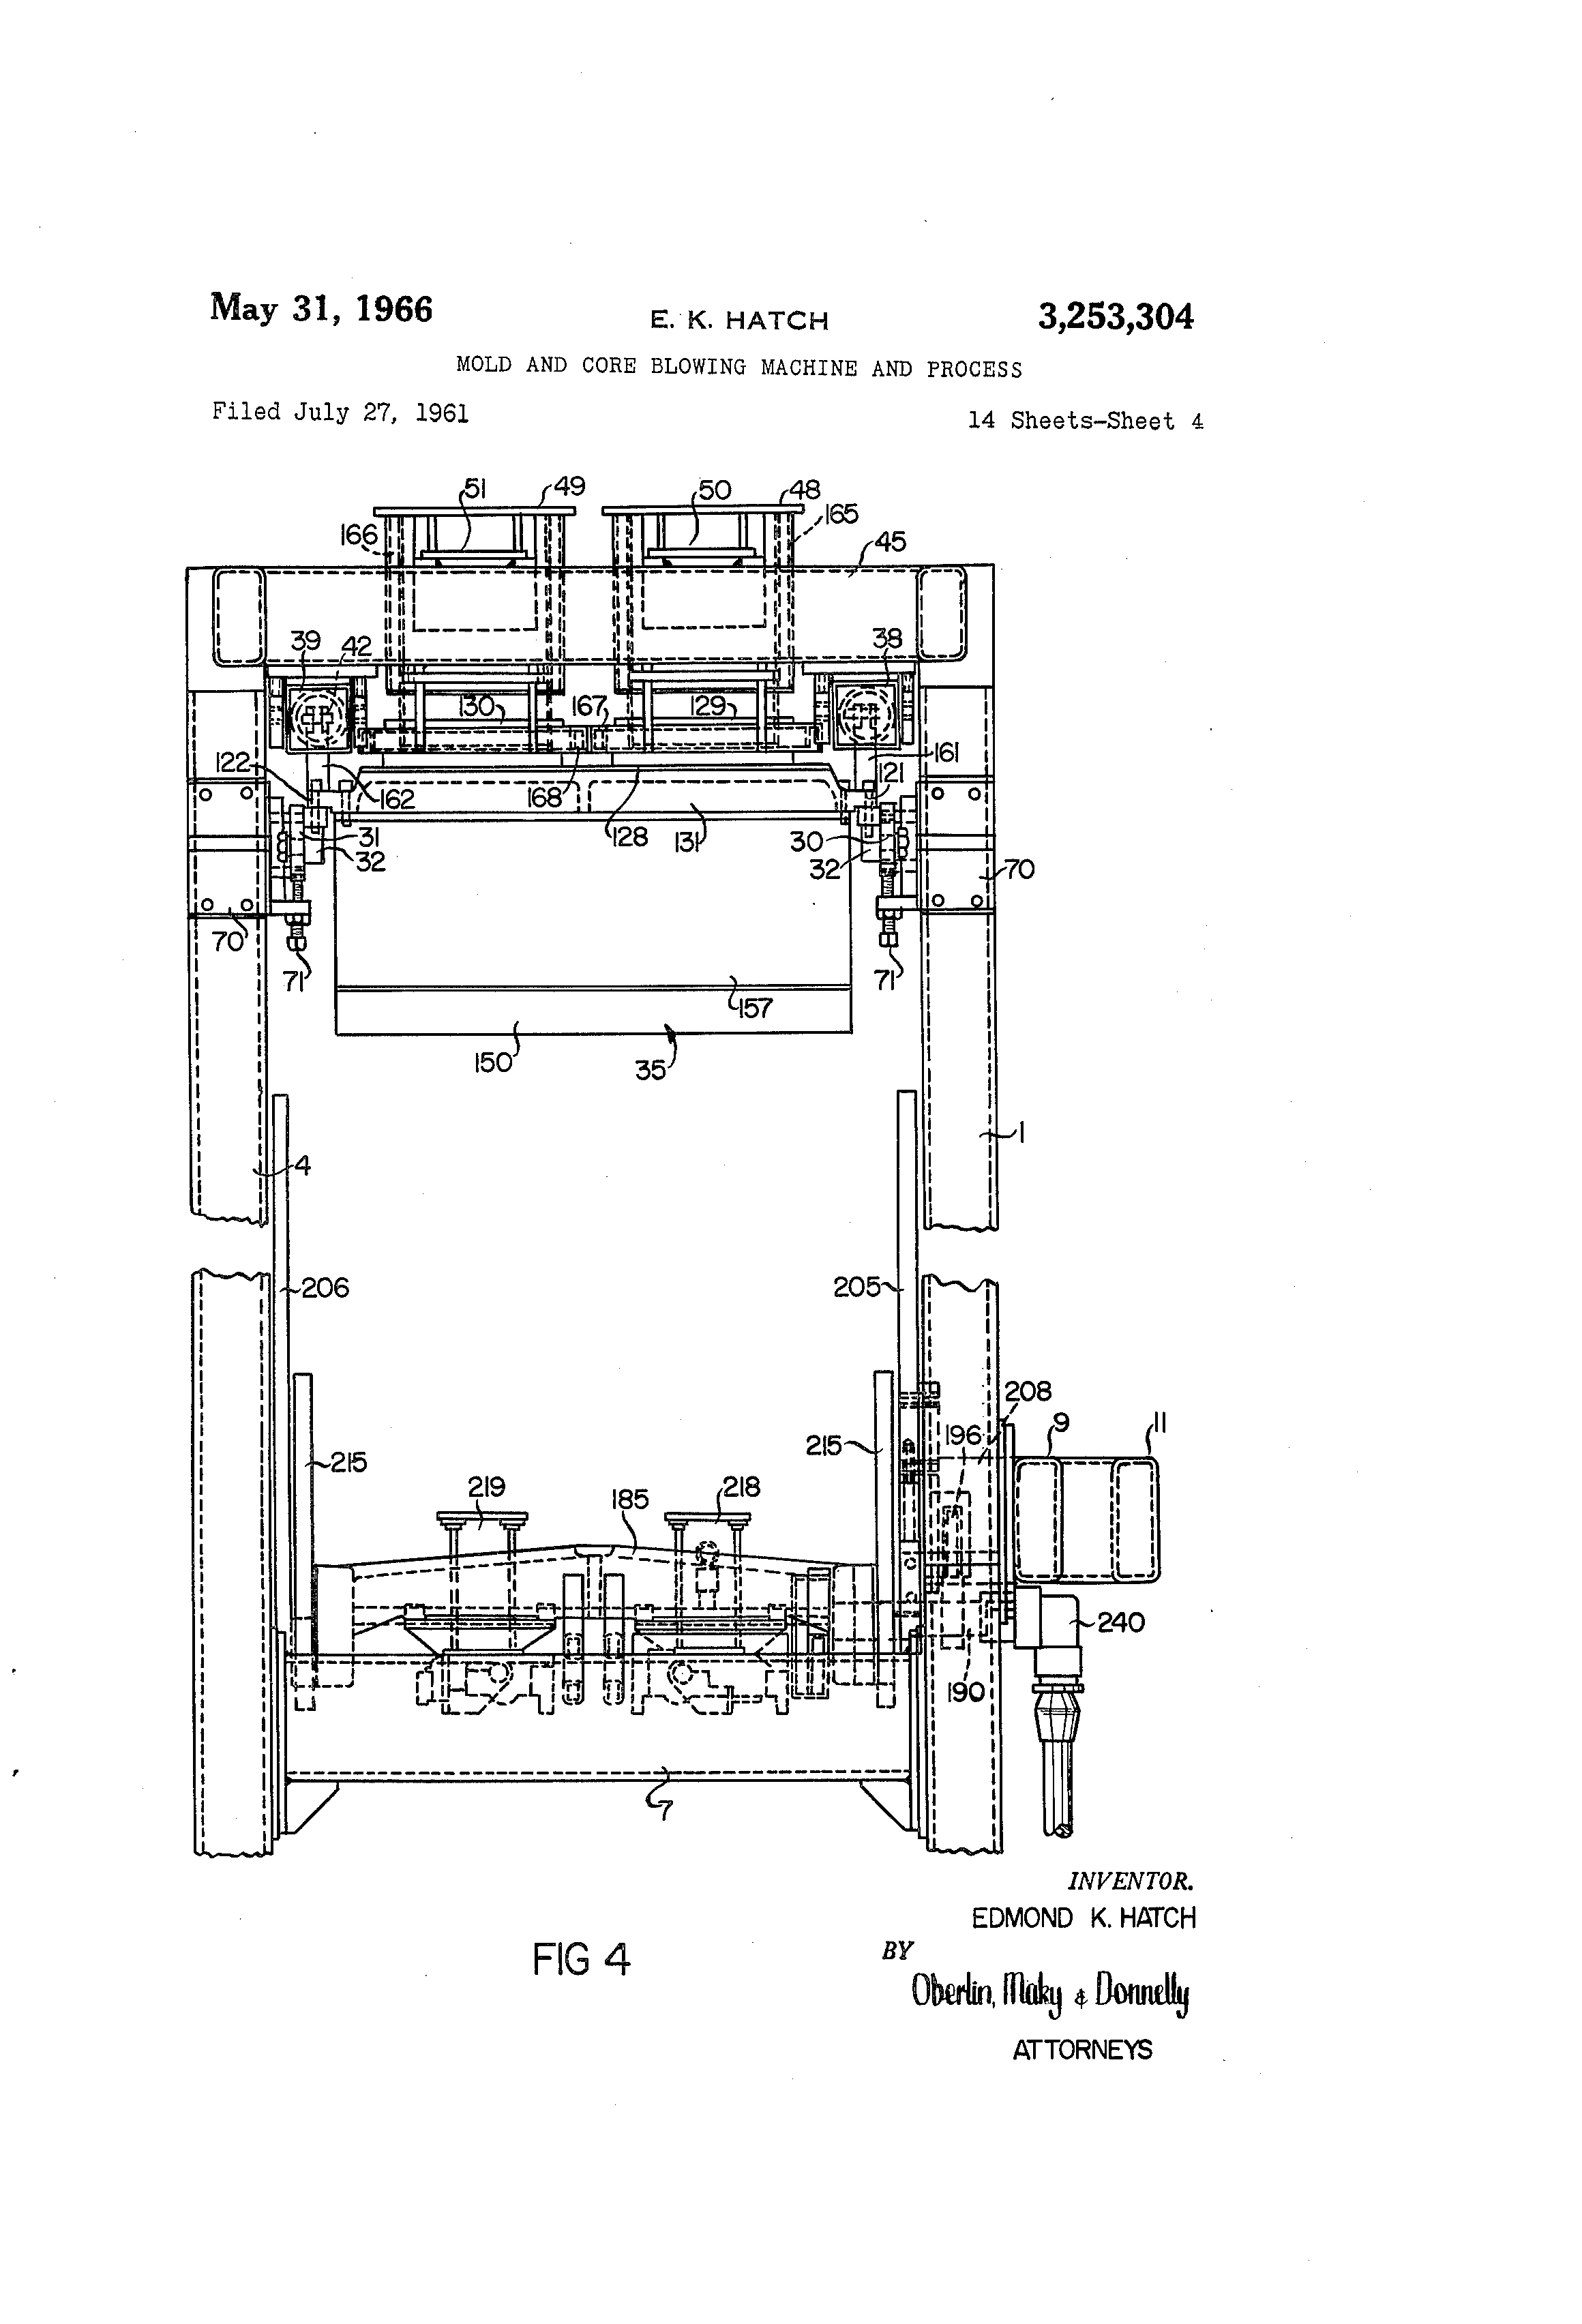 US3253304 3 patent us3253304 mold and core blowing machine and process  at reclaimingppi.co